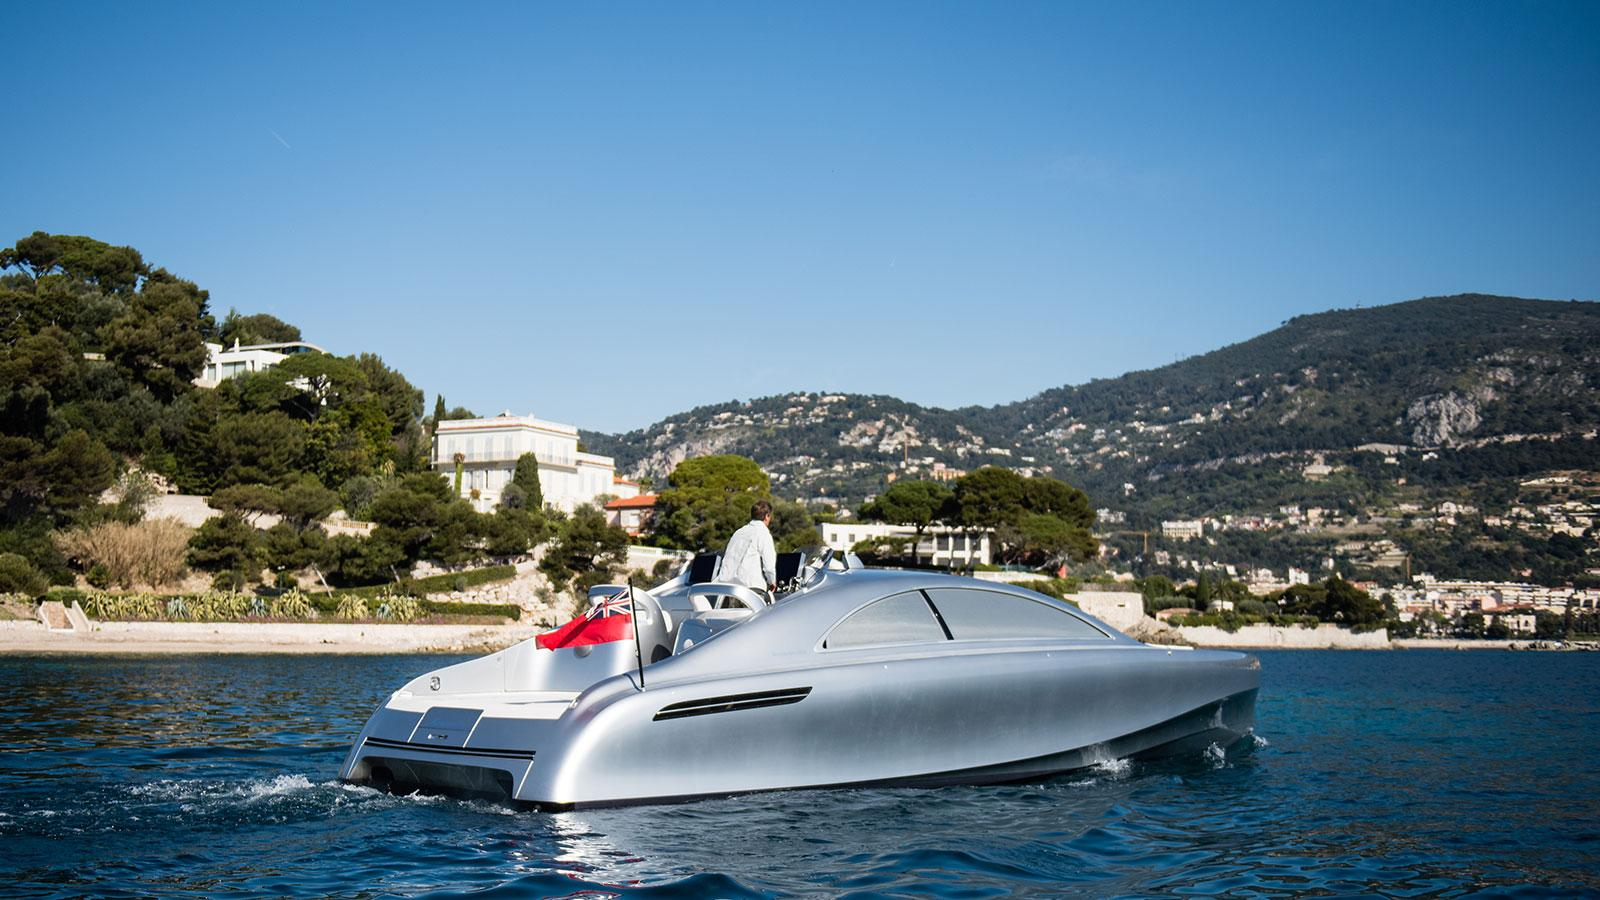 Arte Johnson Love Boat Http Boatinternational Yachts News Baltic Yachts To Put